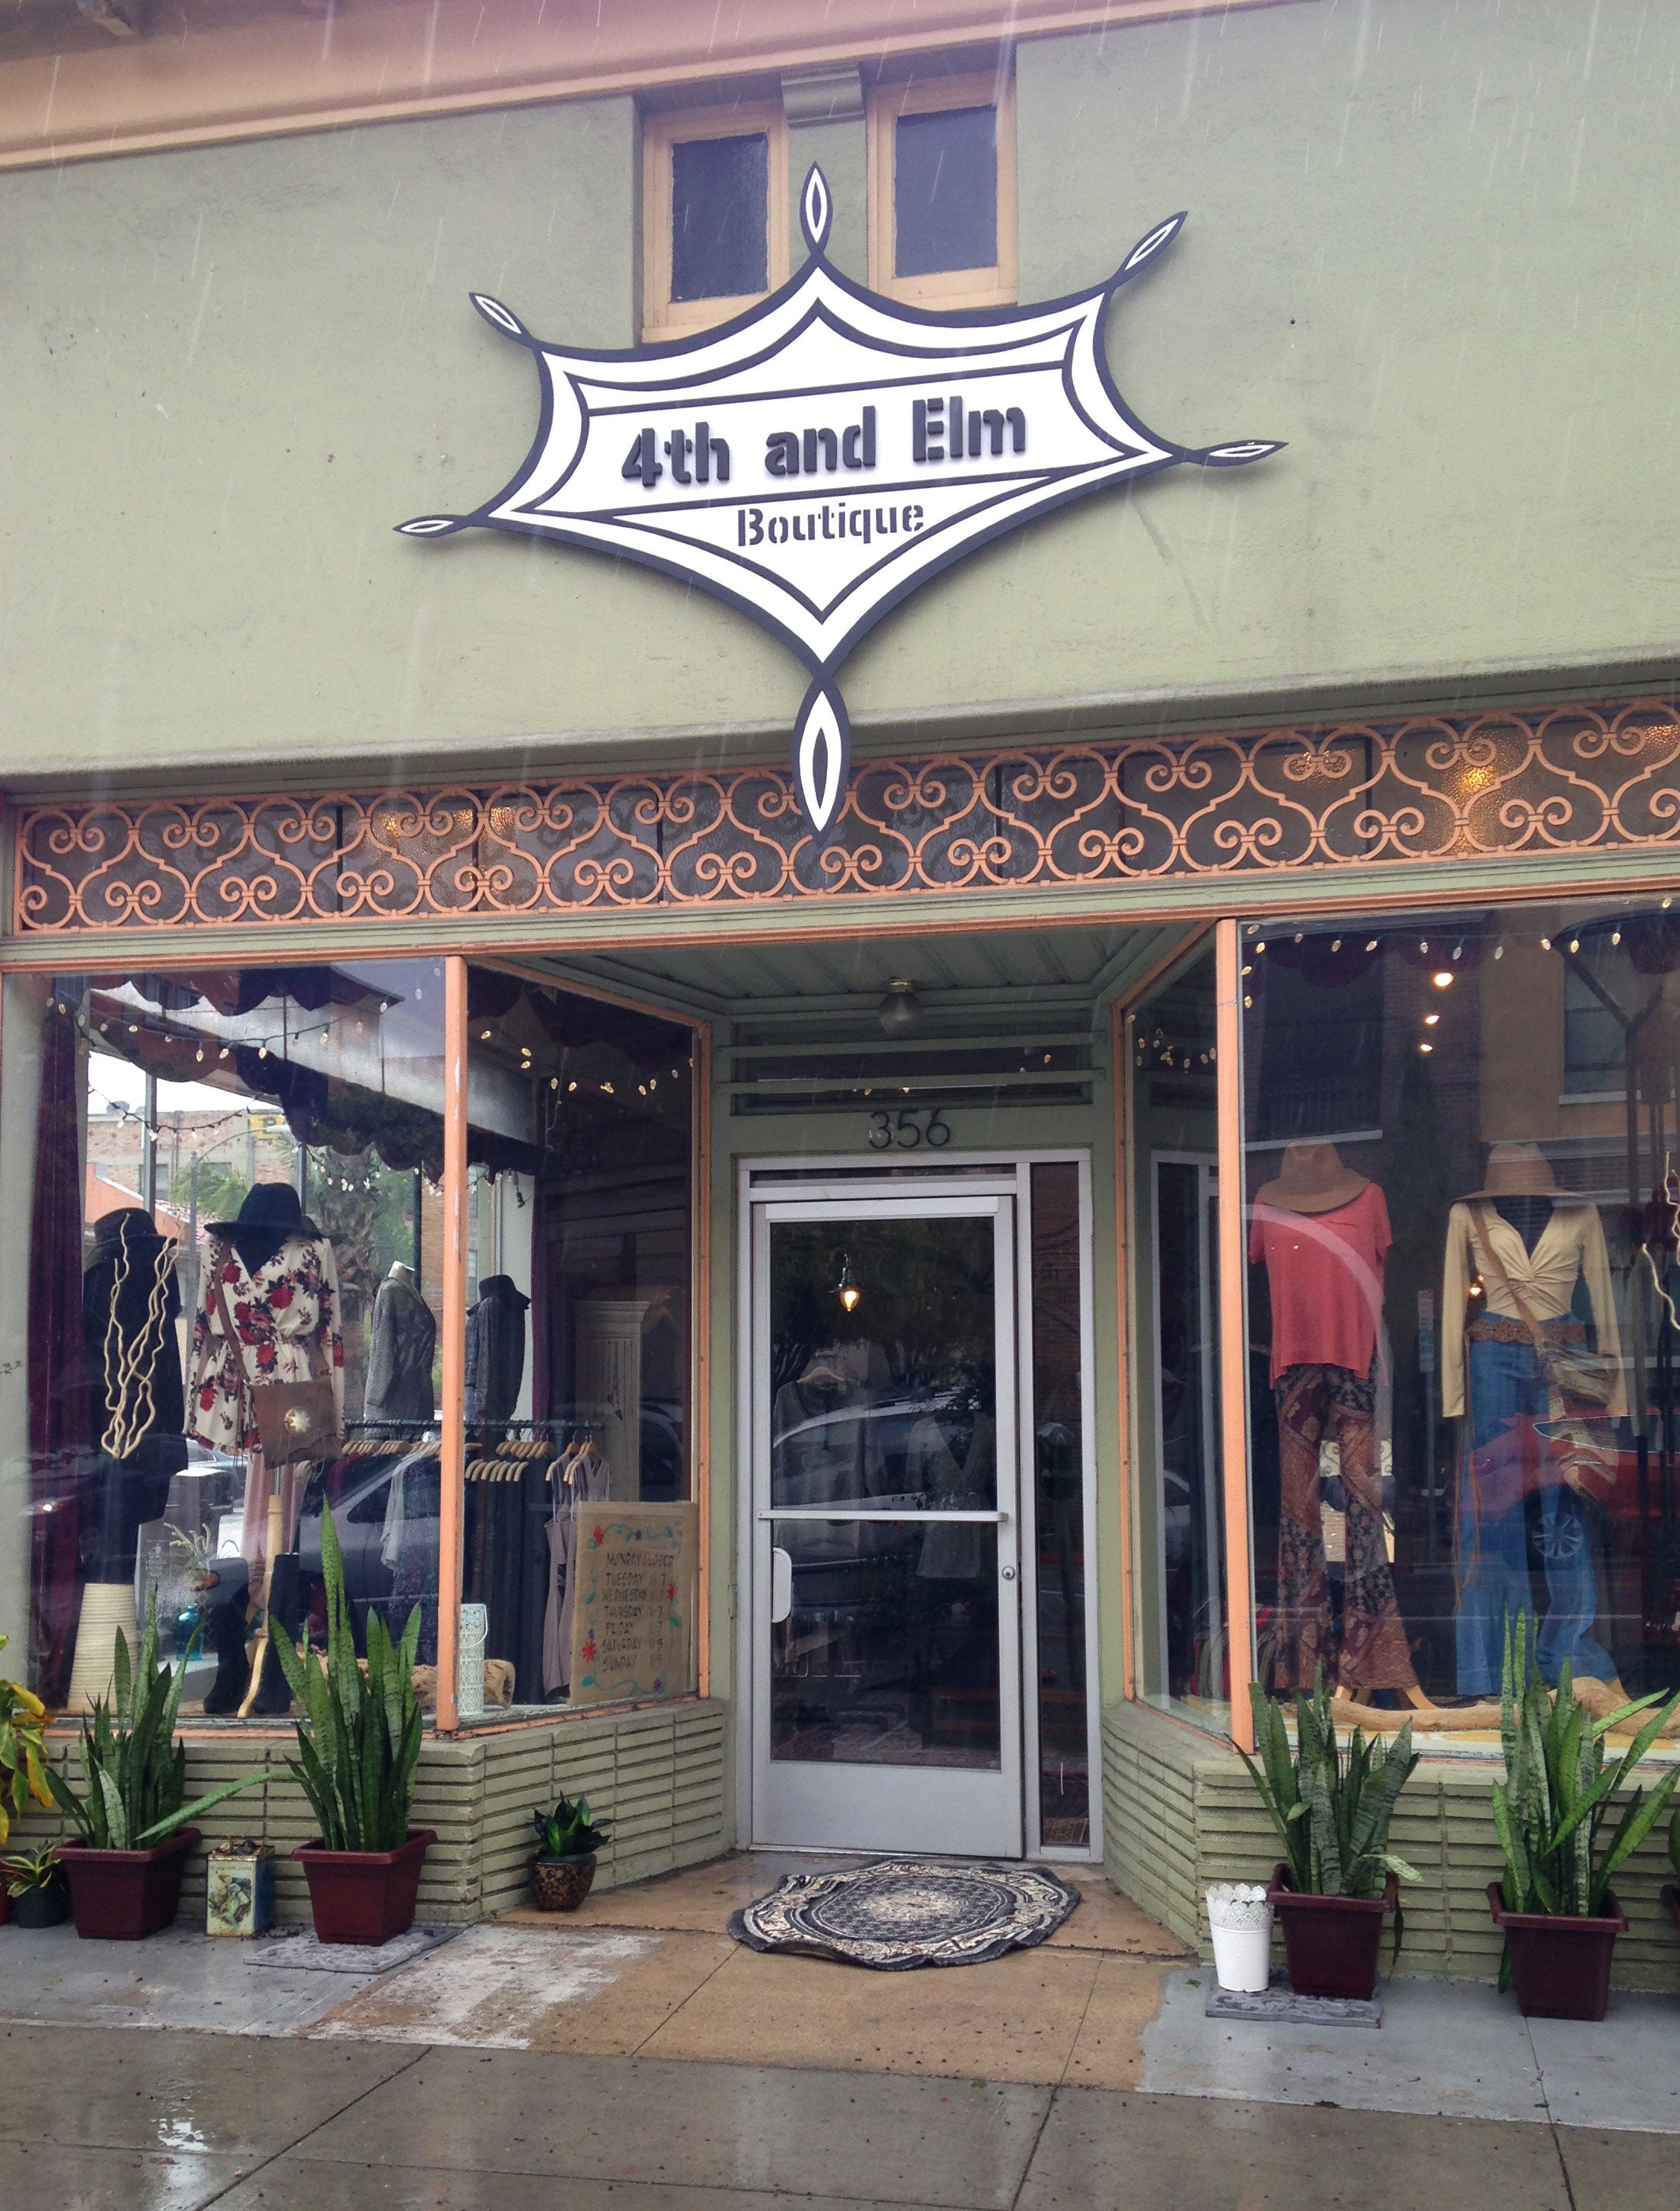 4th and Elm Boutique Shop in Long Beach, CA